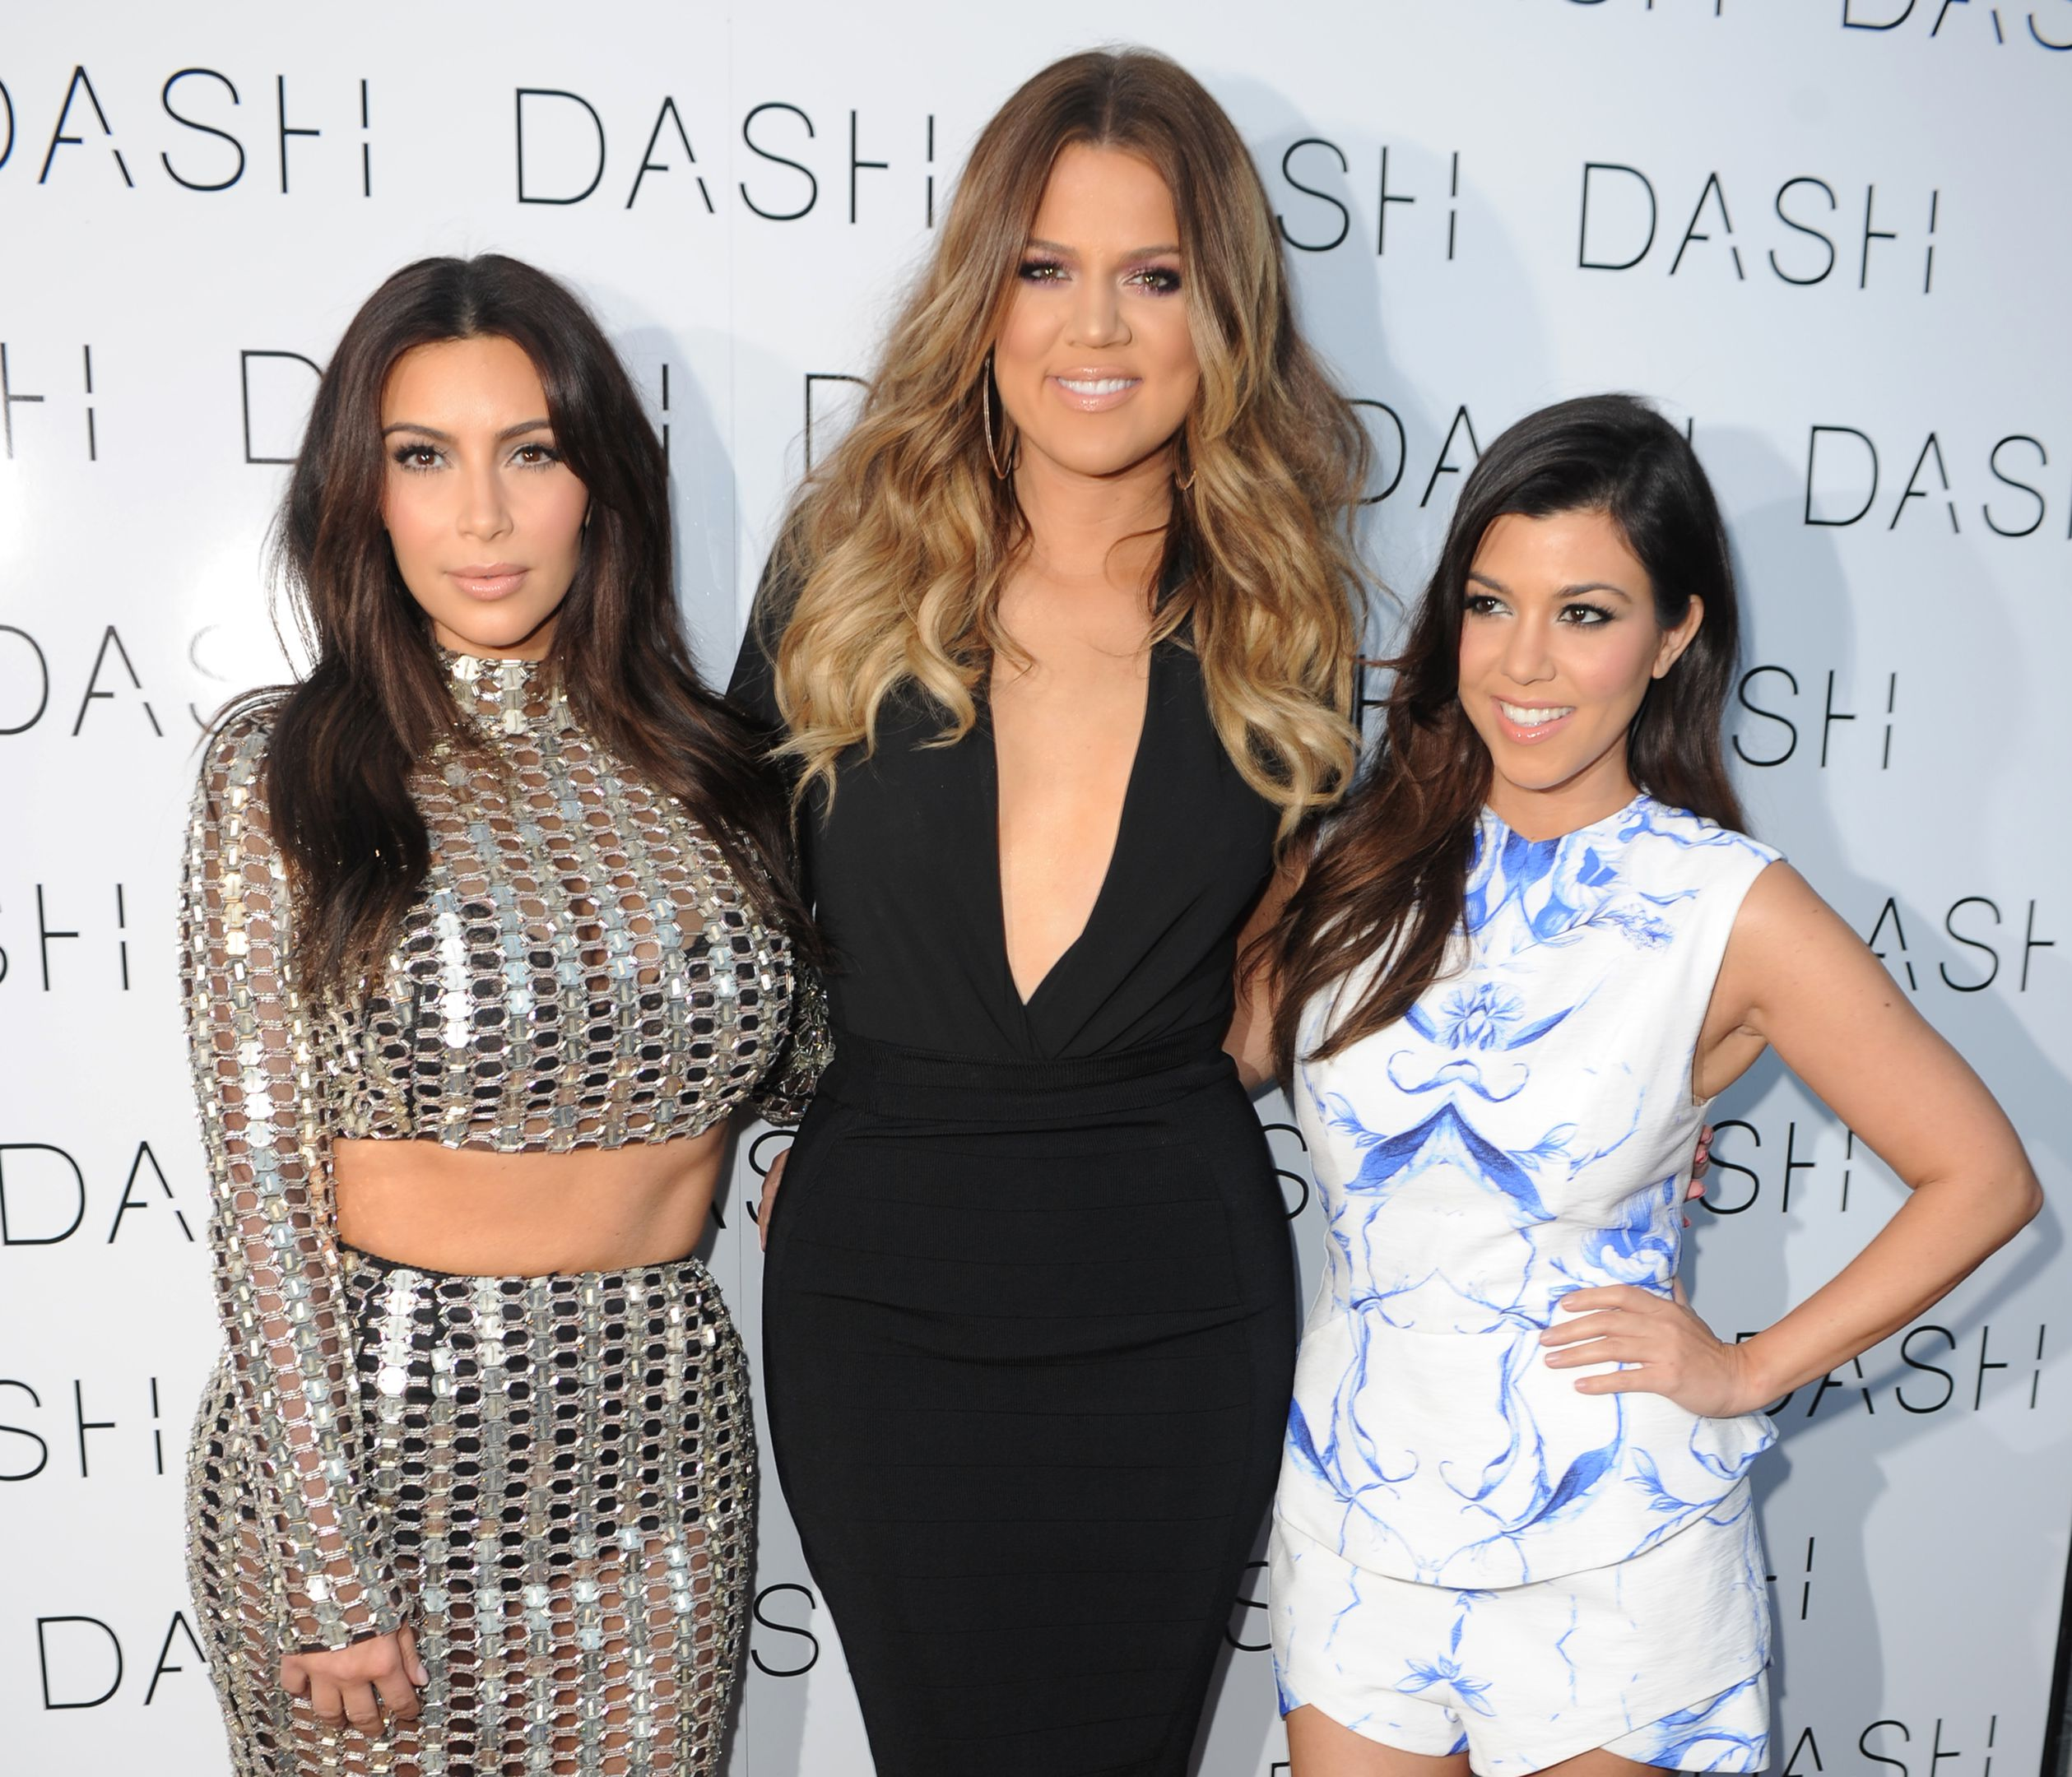 Khloe Kardashian sends love to Kourtney on her 39th birthday